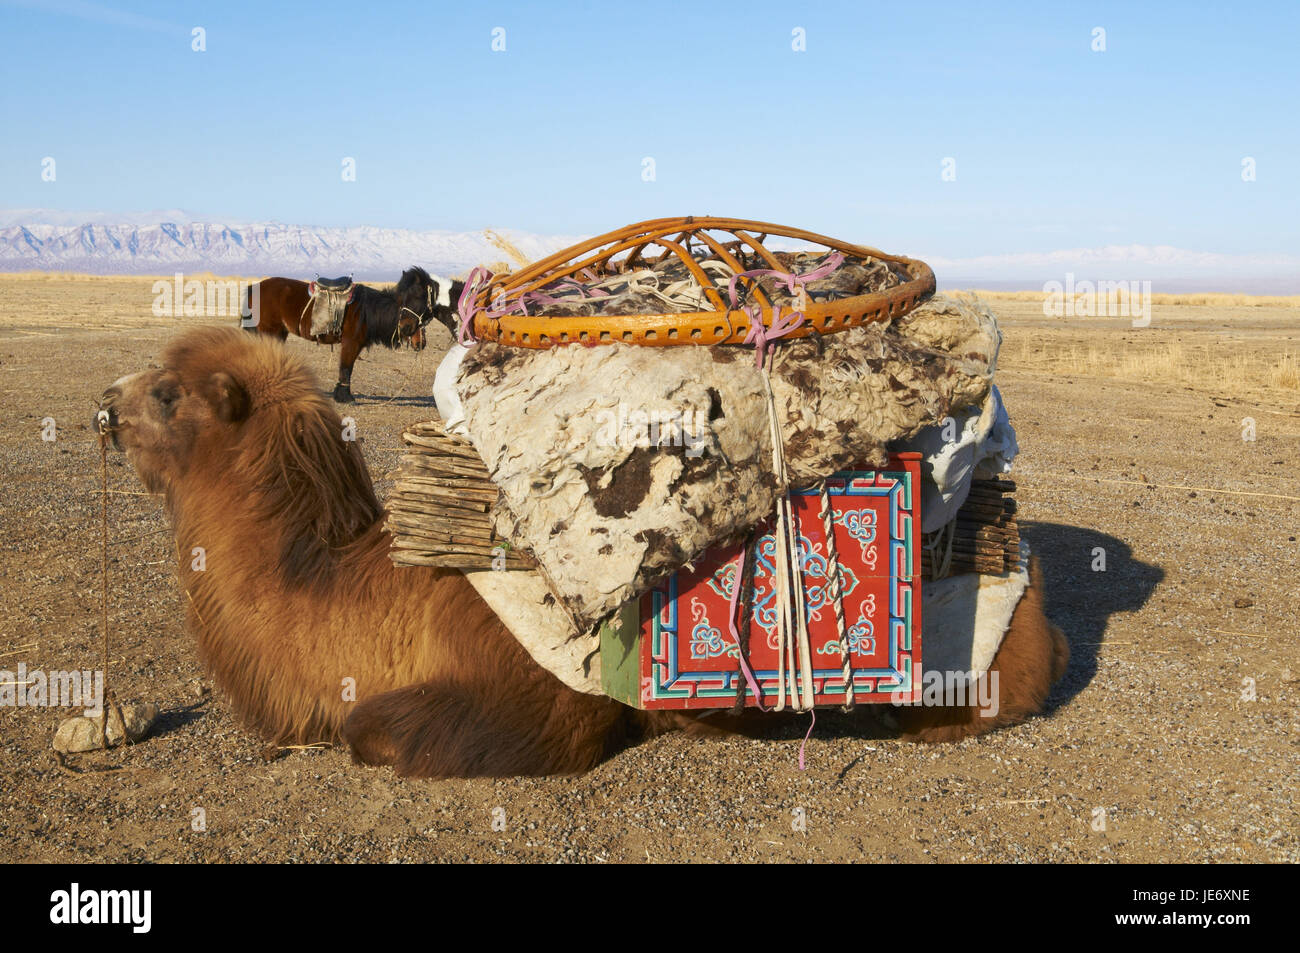 Mongolia, Khovd province, nomad's warehouse, camel with costs, steppe, winter, - Stock Image